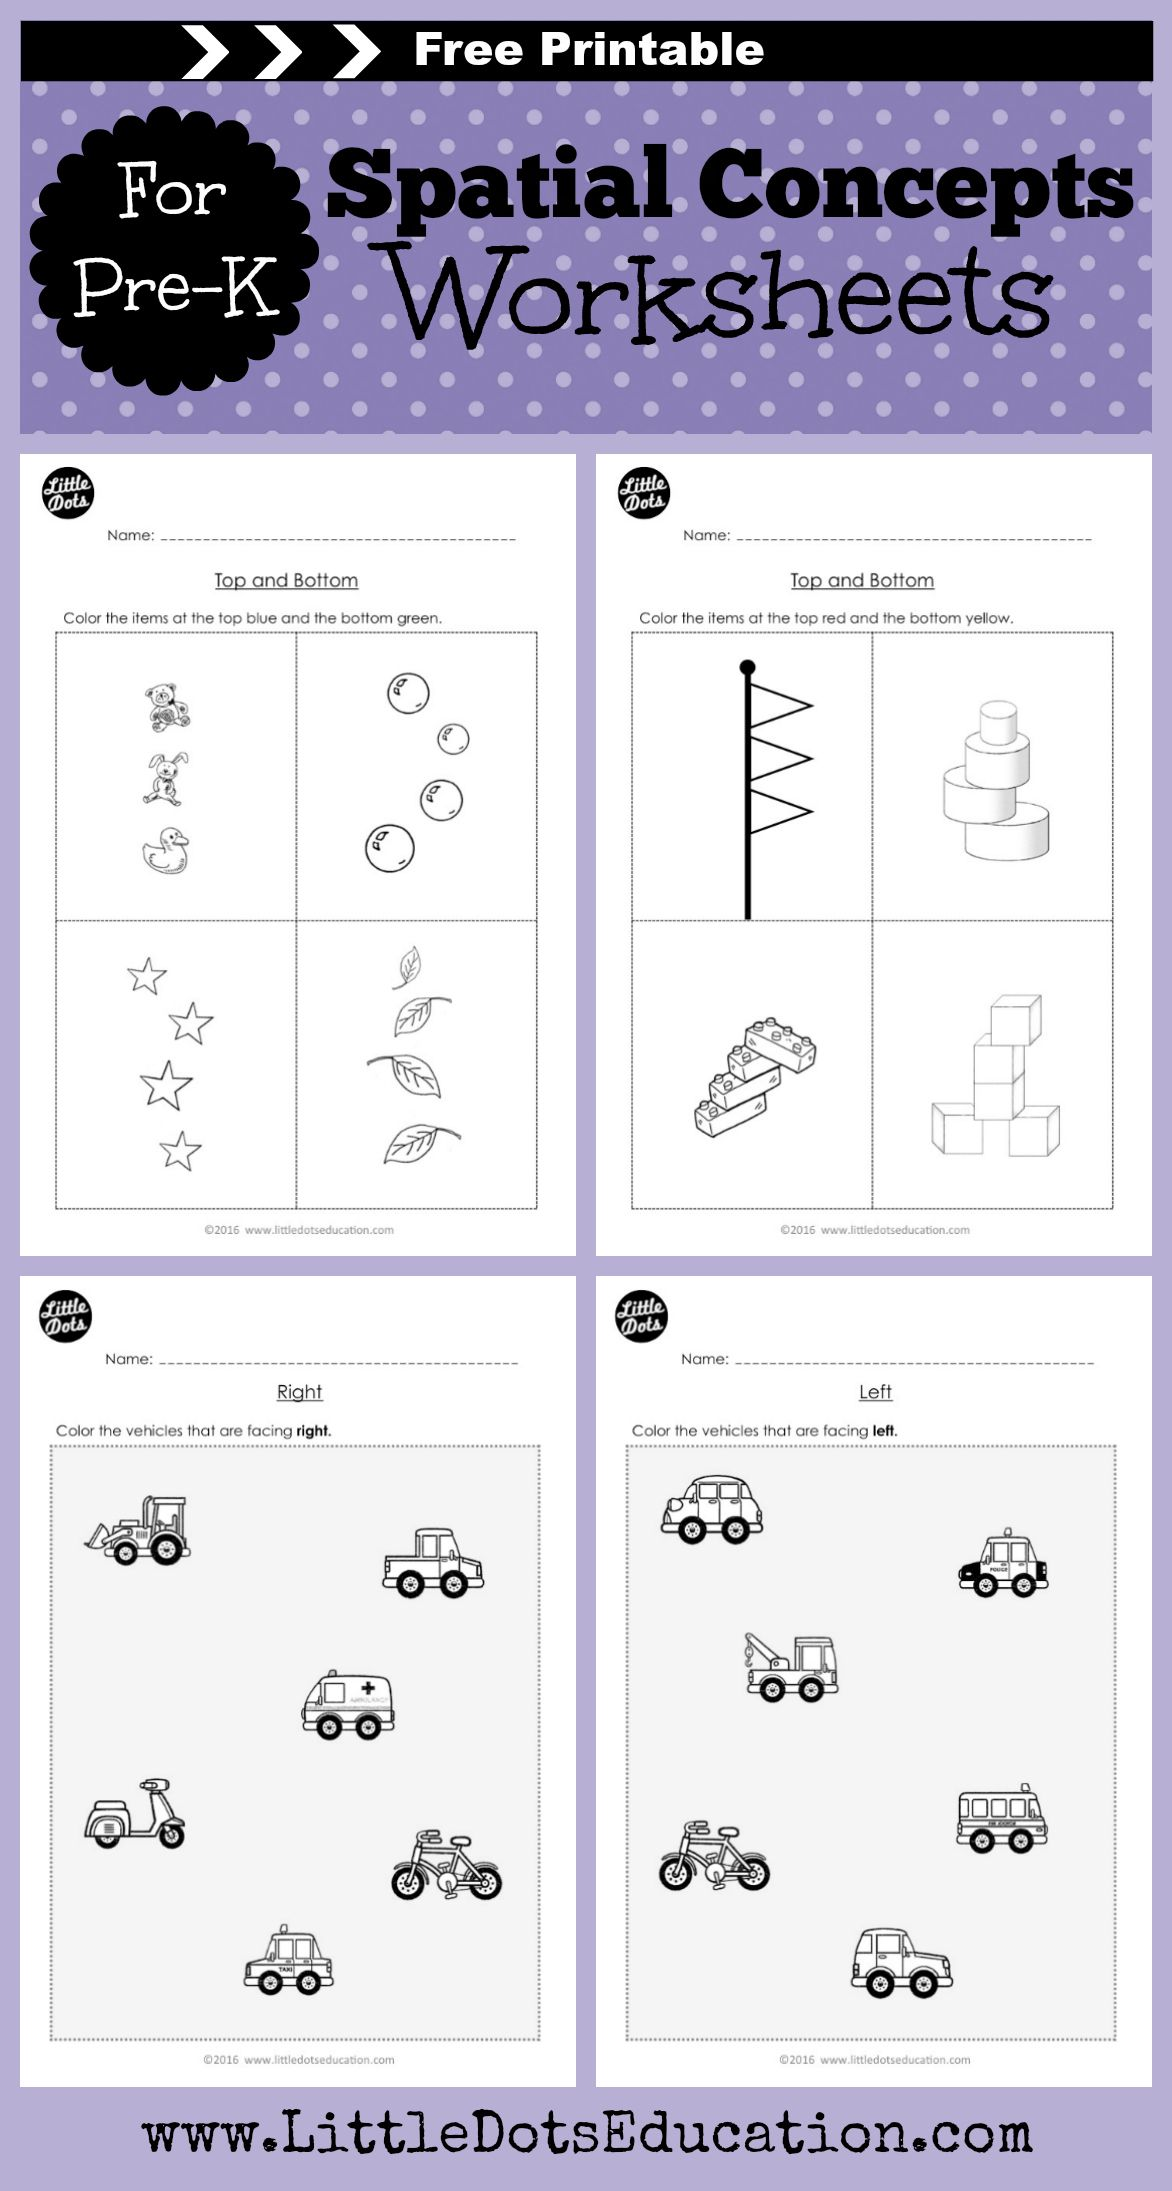 hight resolution of Pre-K Spatial Concepts Worksheets and Activities   Spatial concepts